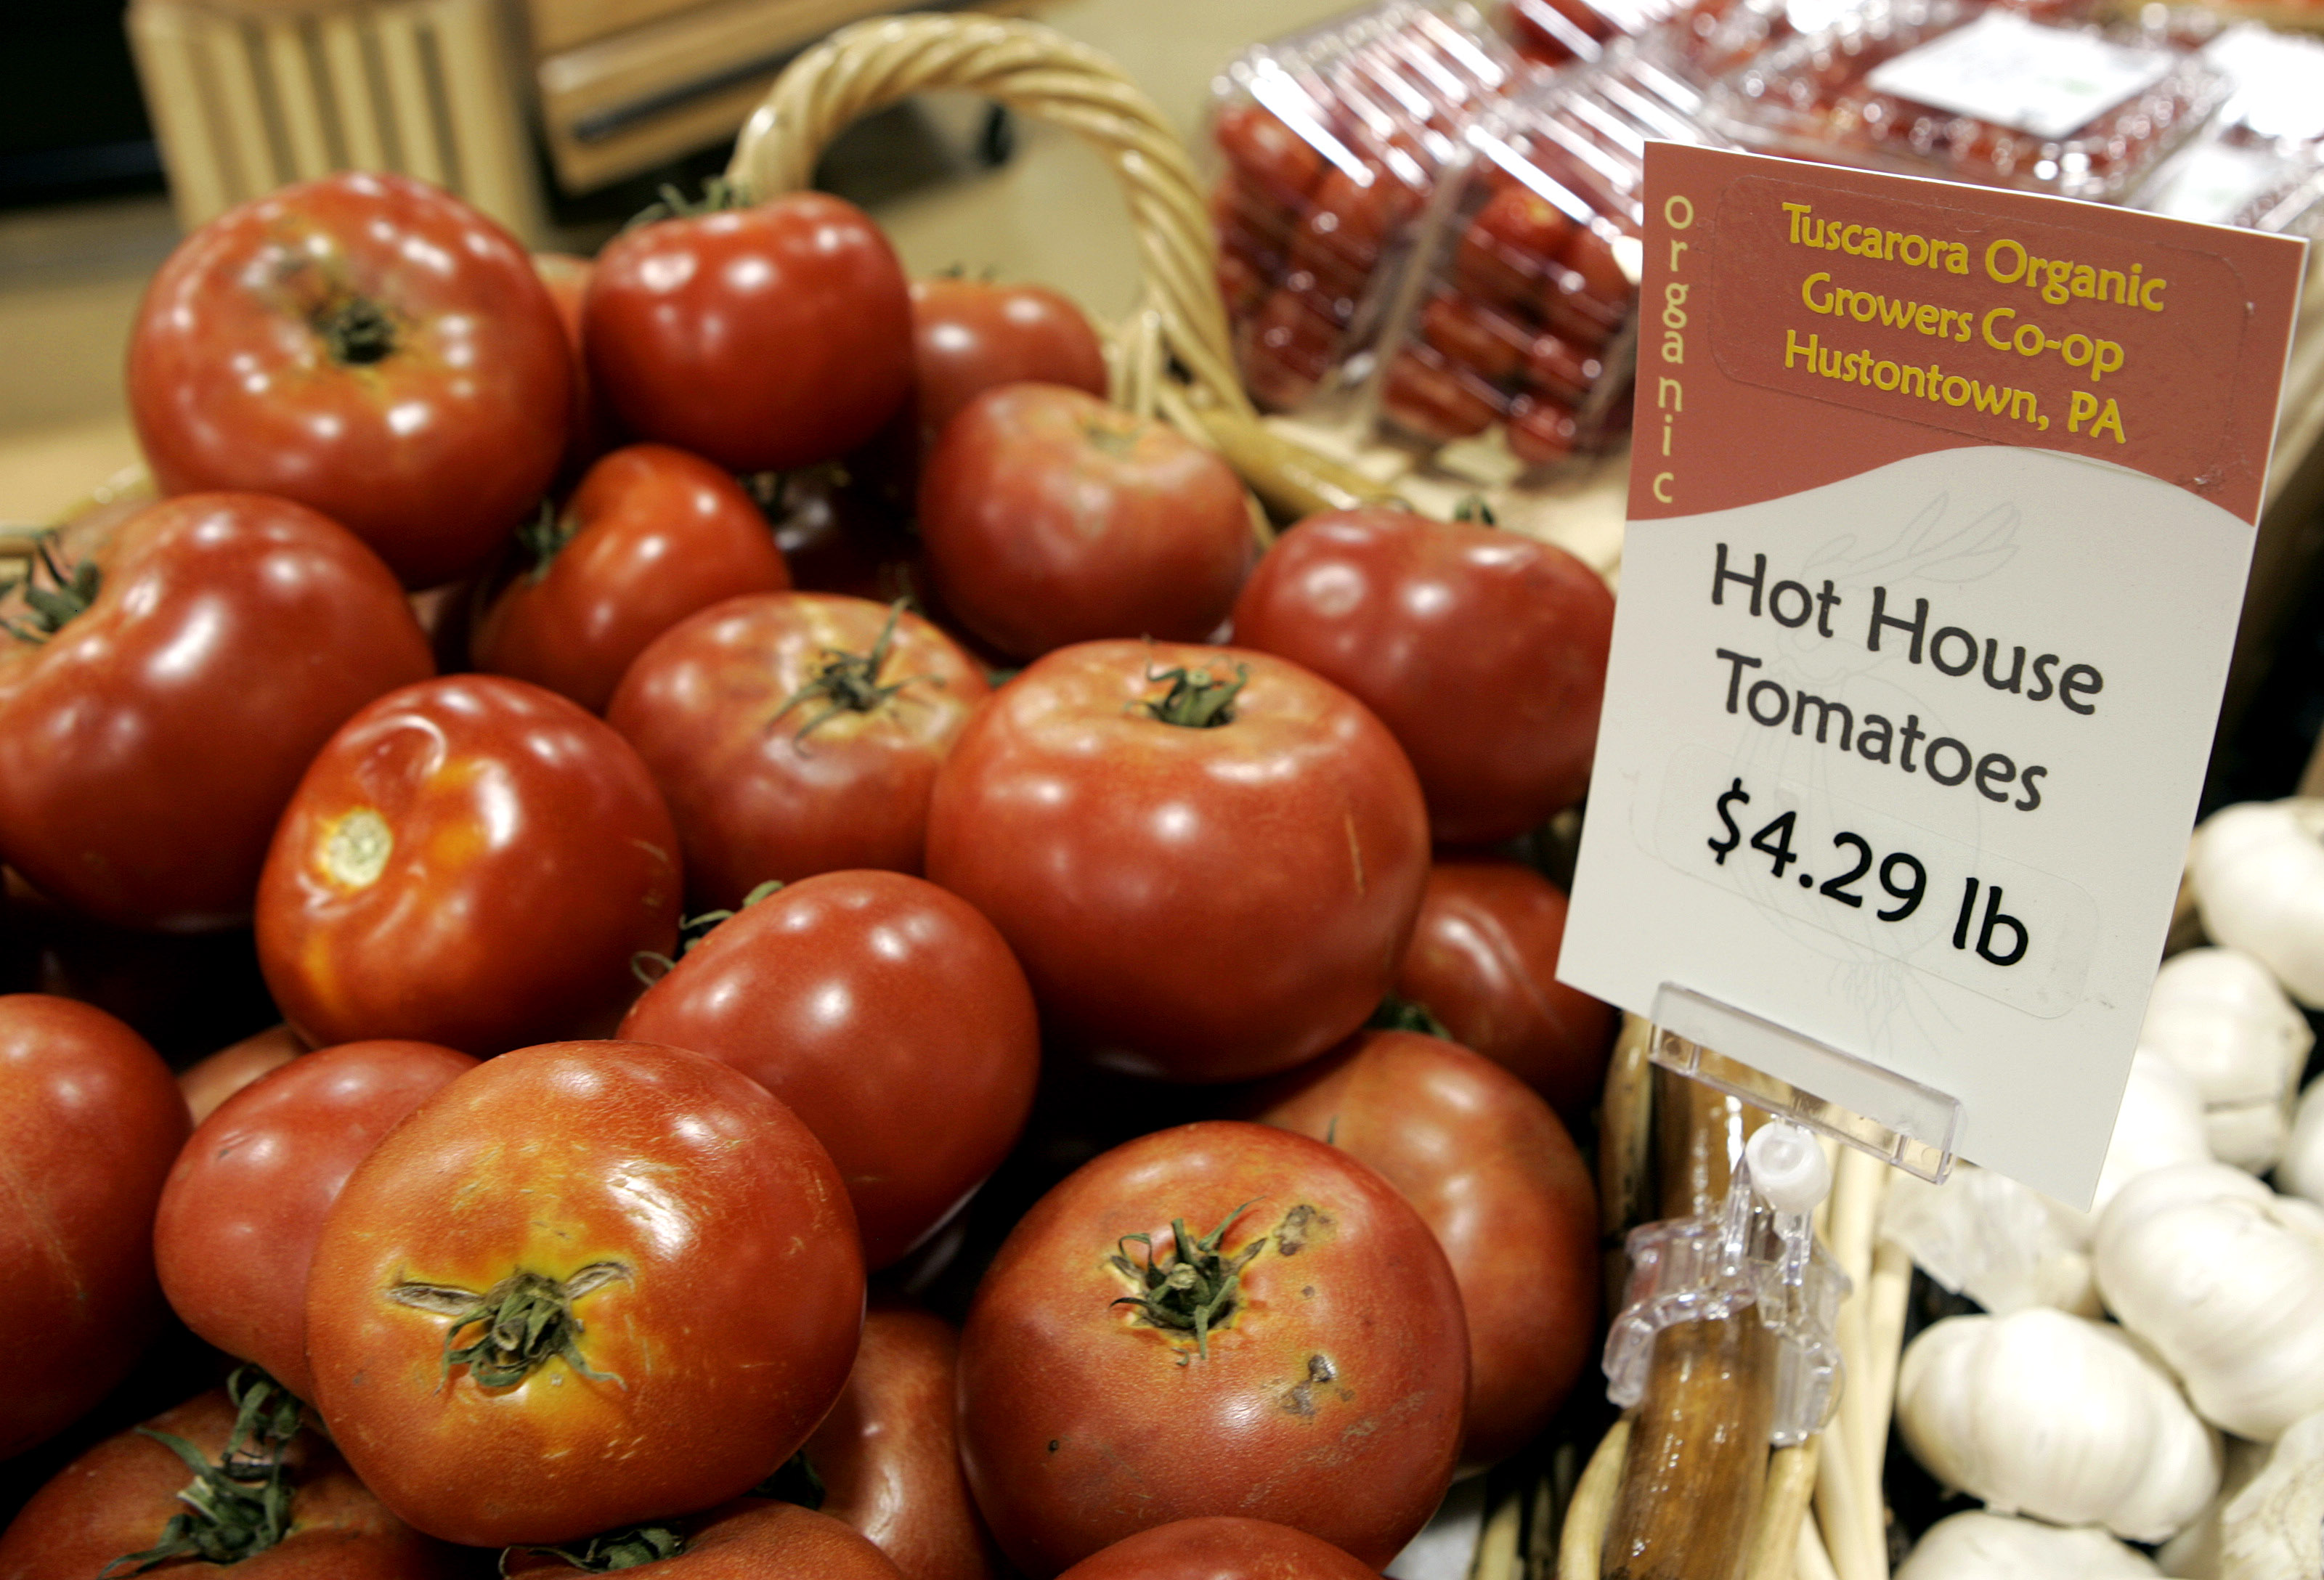 Study: Organic foods are more nutritious, taste better